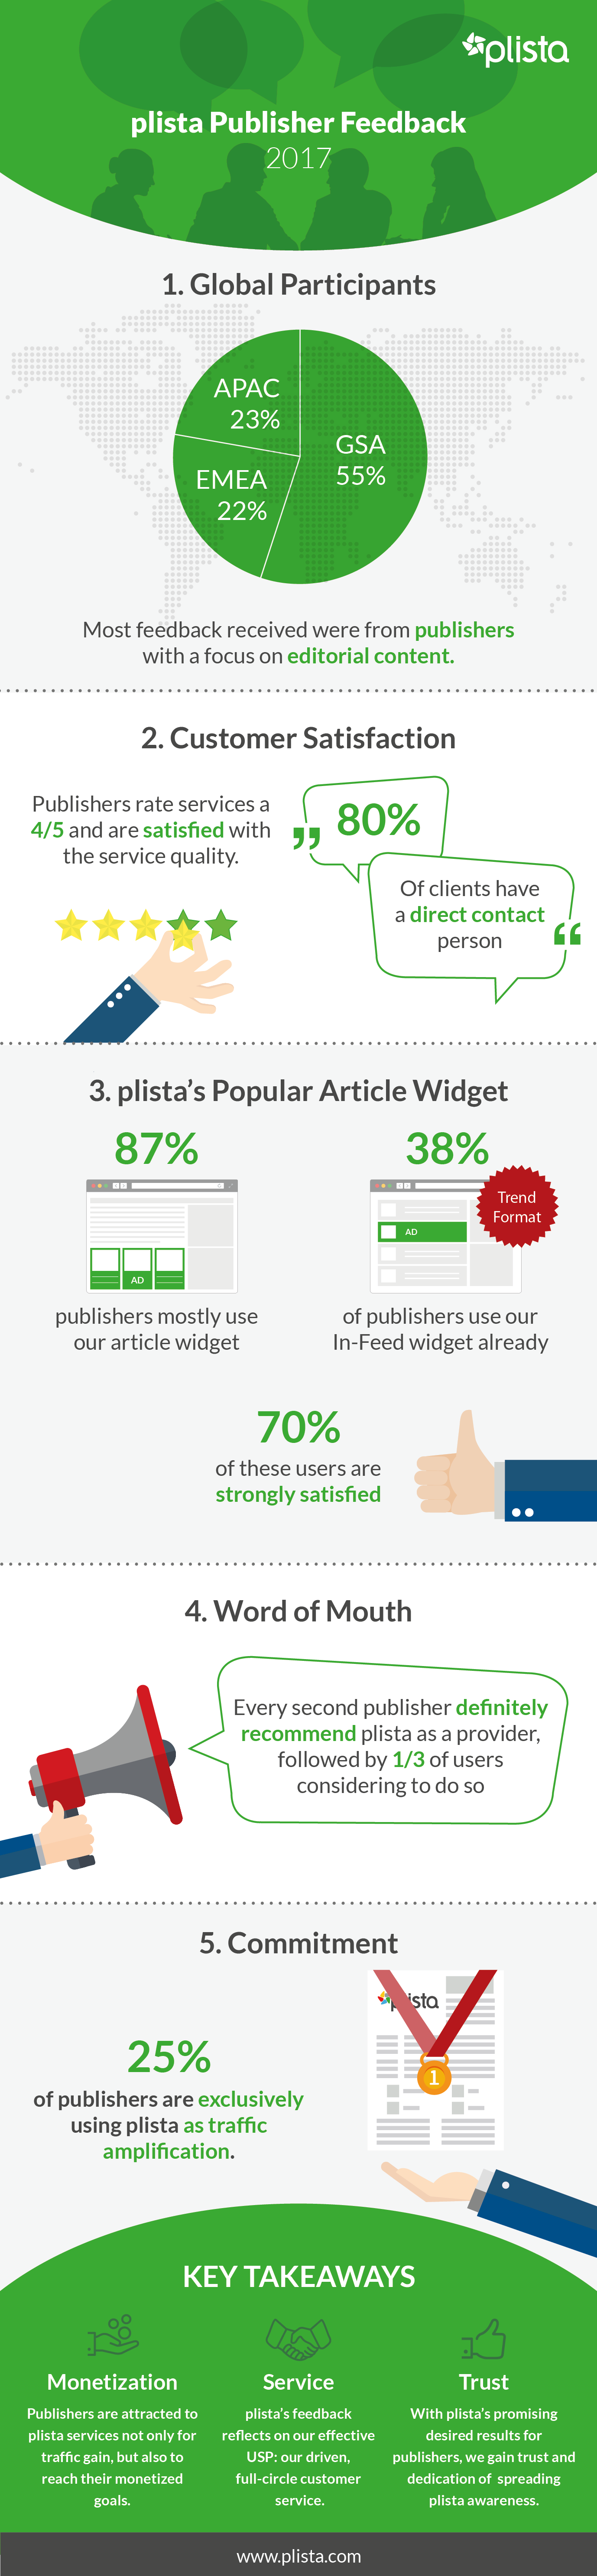 In this image you can see the feedback of the plista publisher, which is very positive.